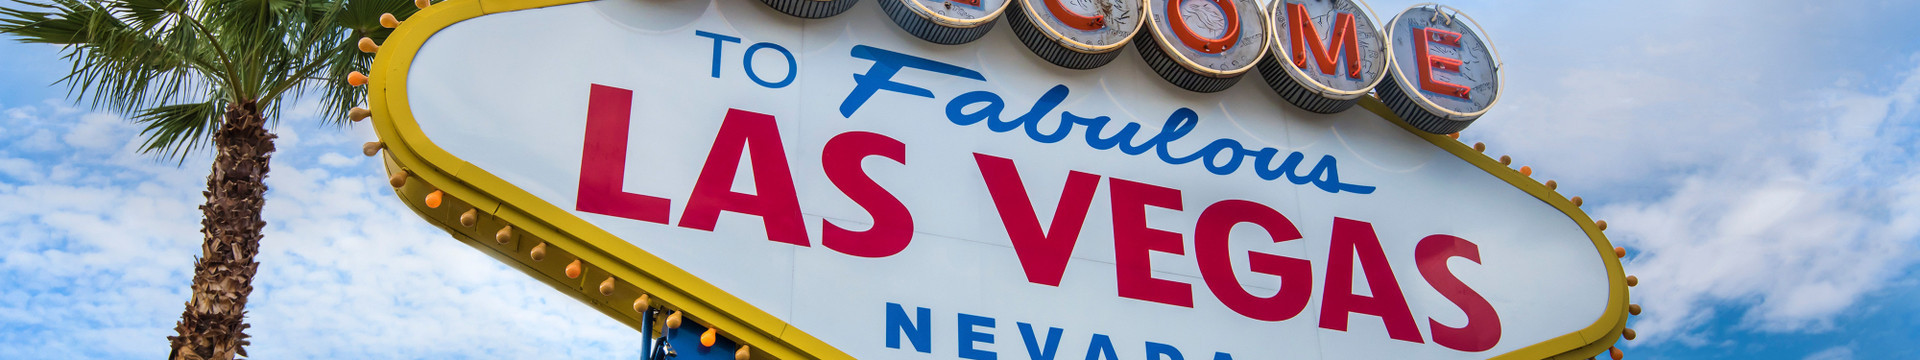 Hotel Deals at our Las Vegas Hotel and Casino | Welcome to Fabulous Las Vegas Sign